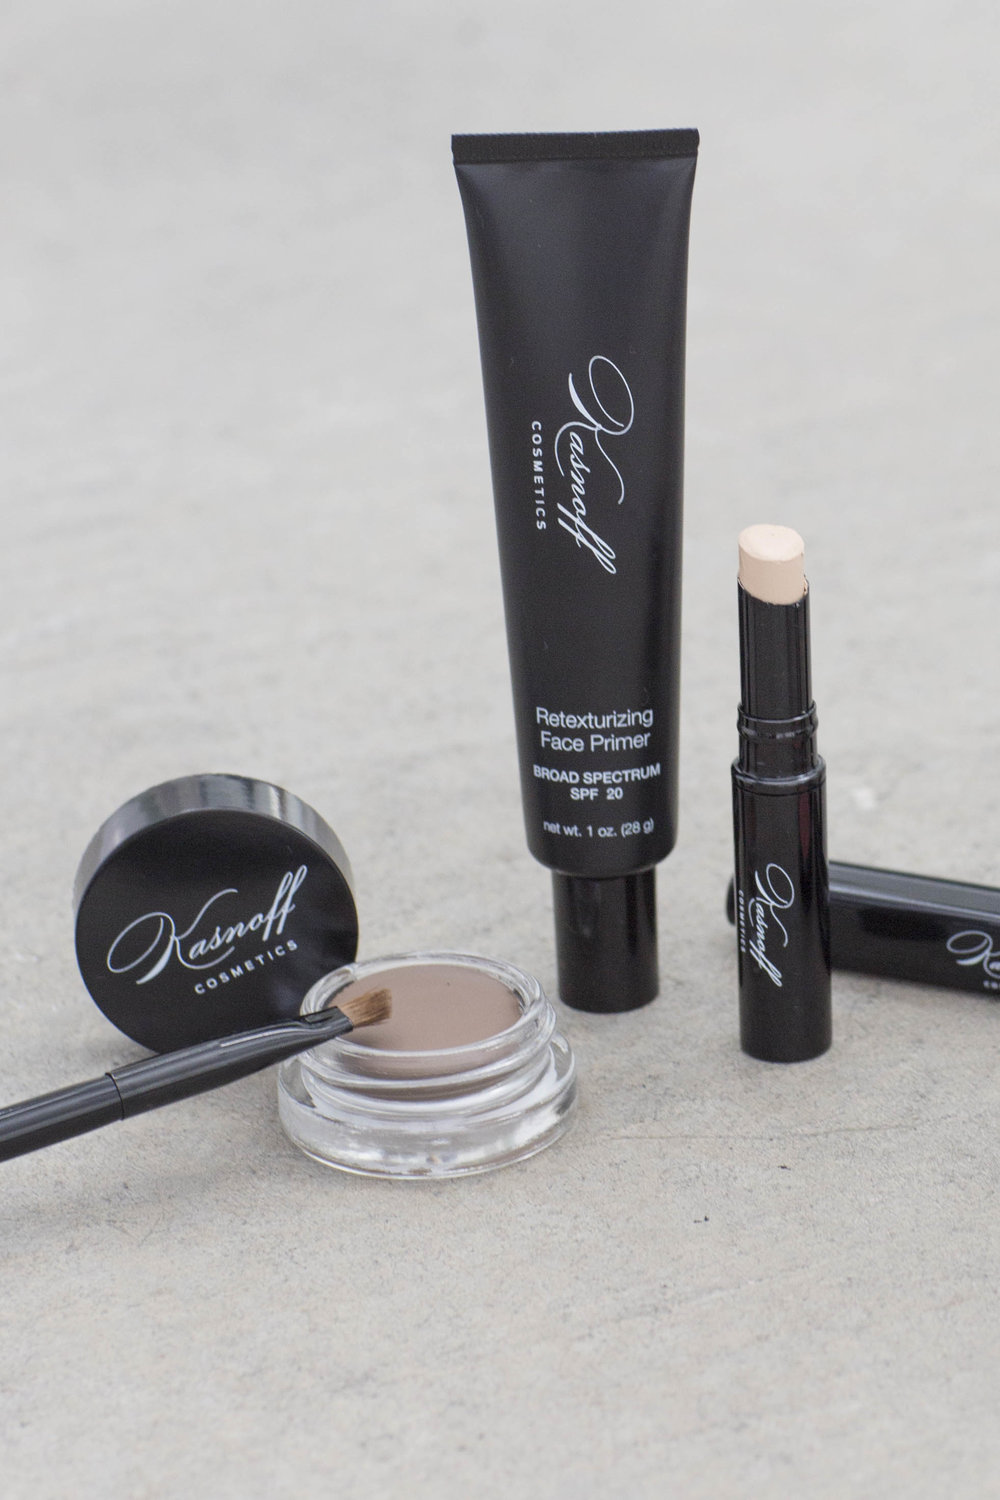 From left to right: brow balm, retexturizing face primer, mineral photo touch concealer.